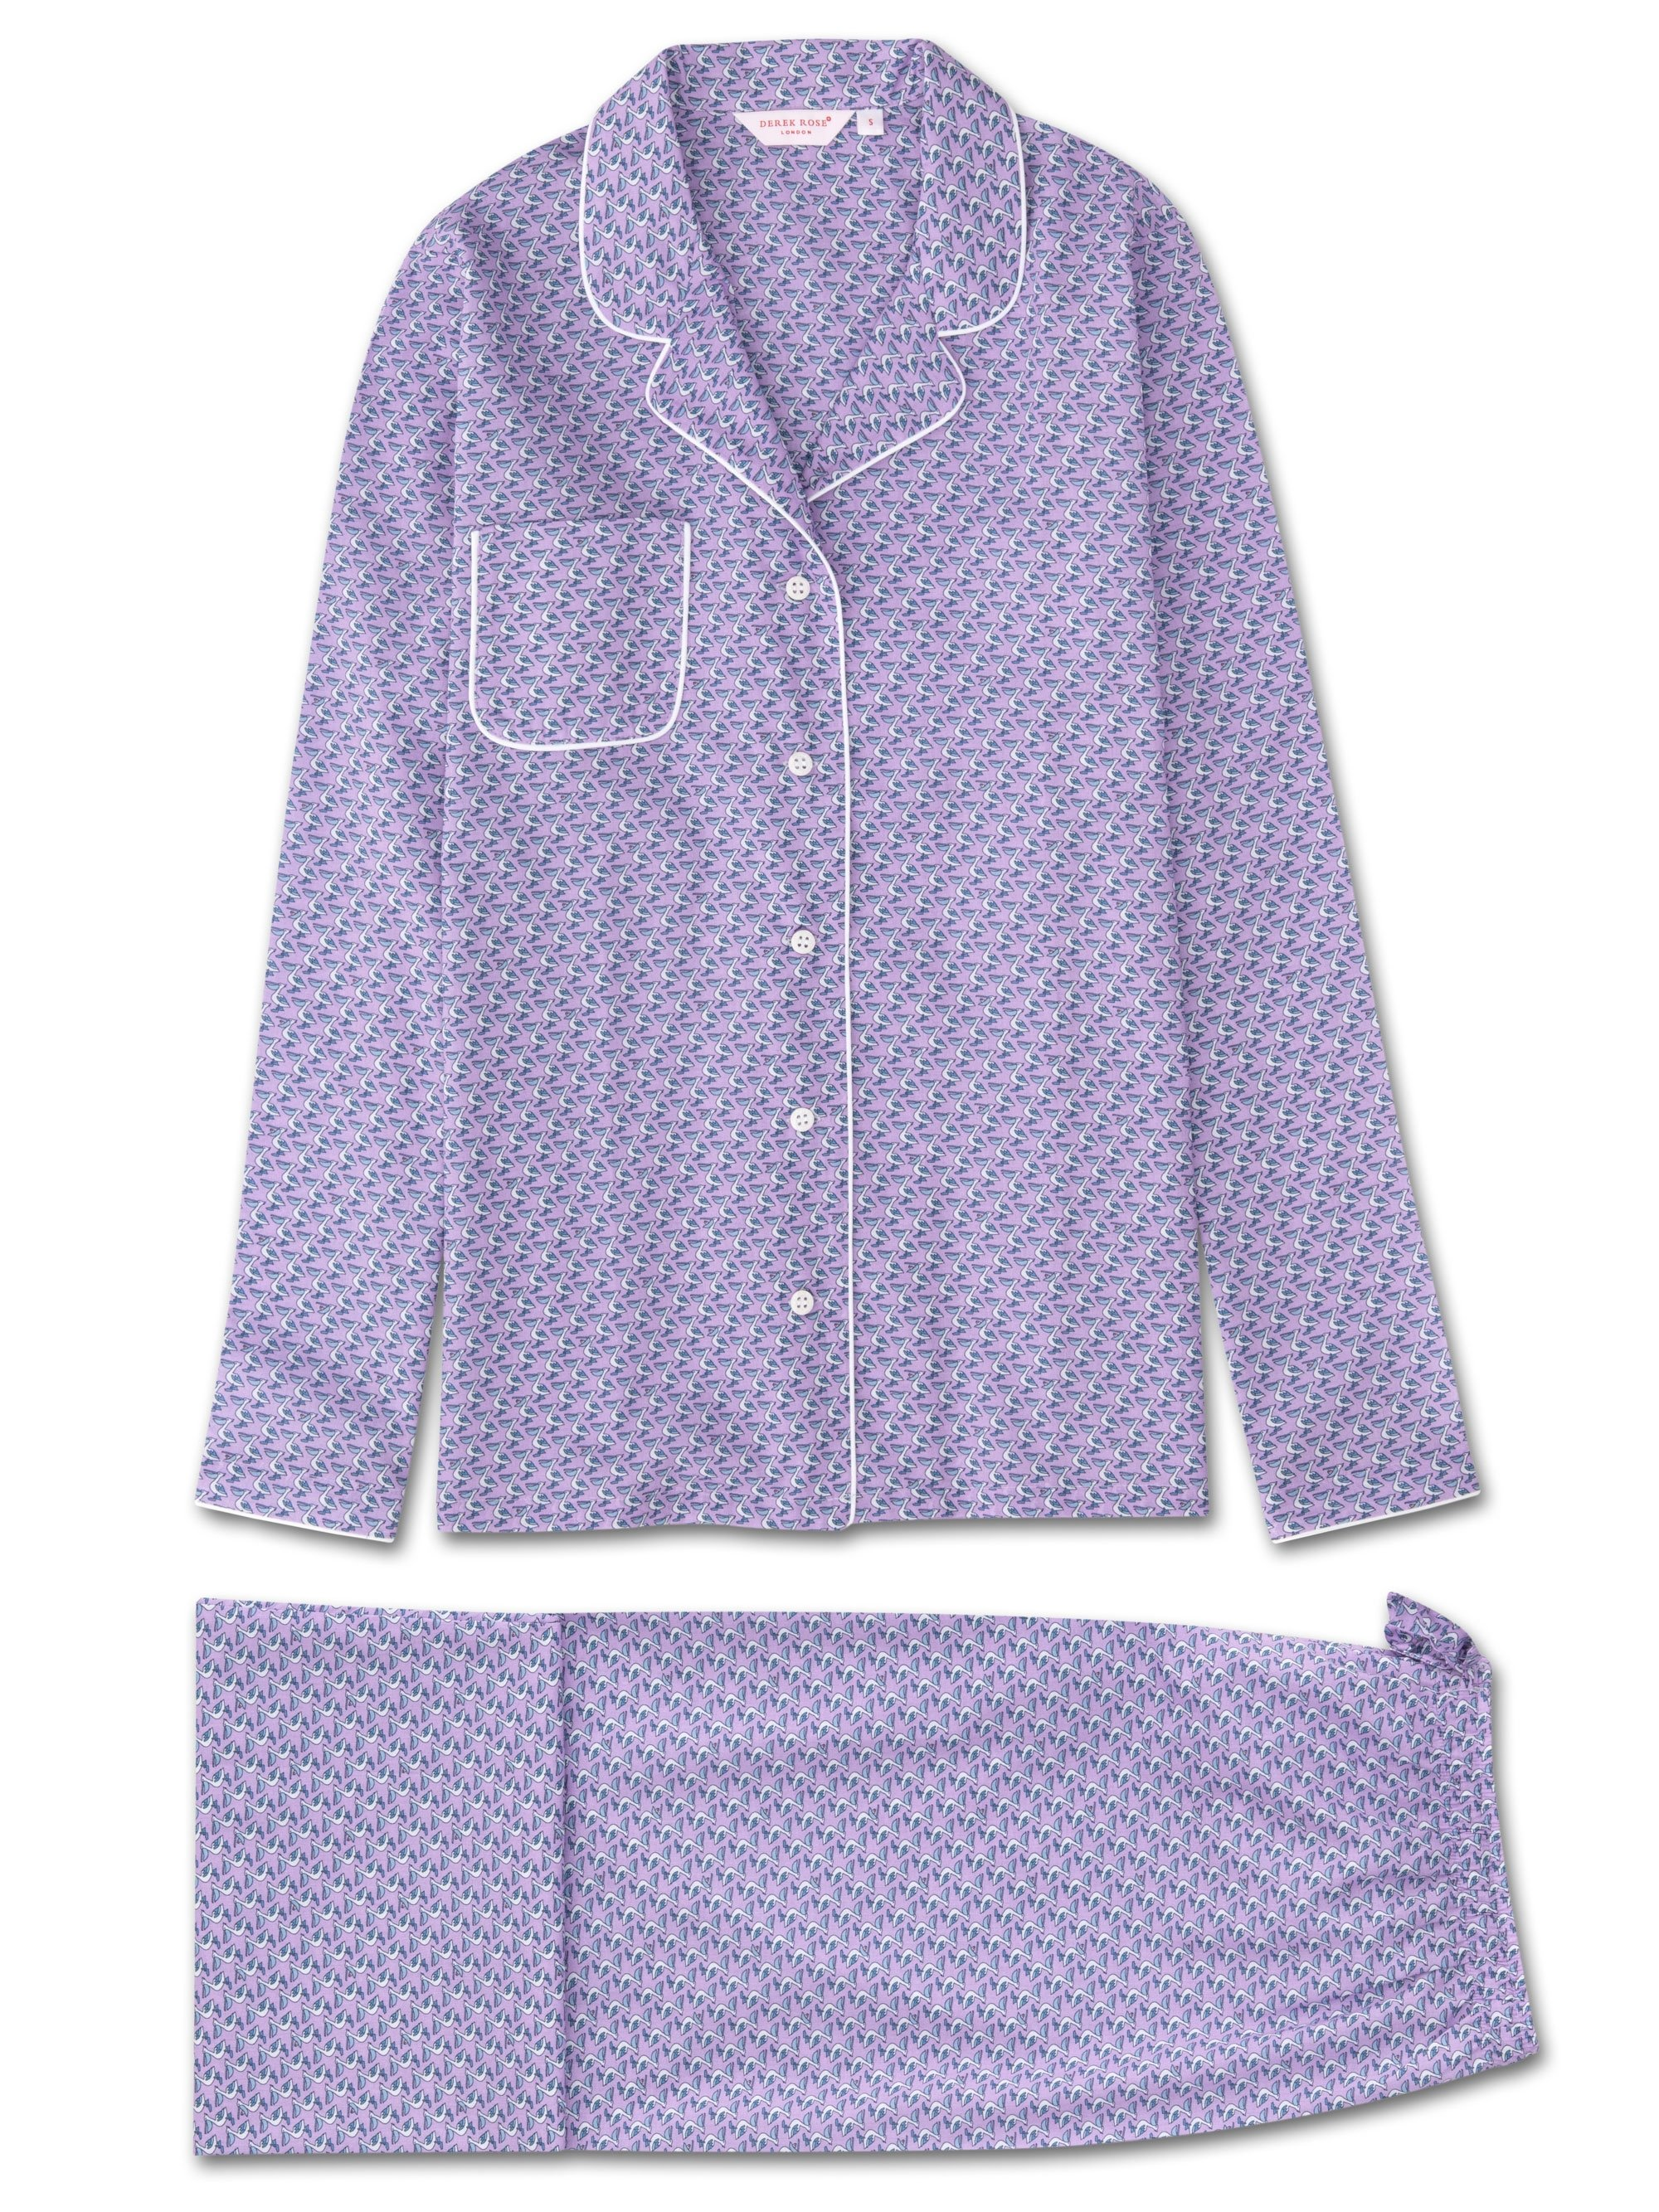 Women's Pyjamas Ledbury 16 Cotton Batiste Lilac